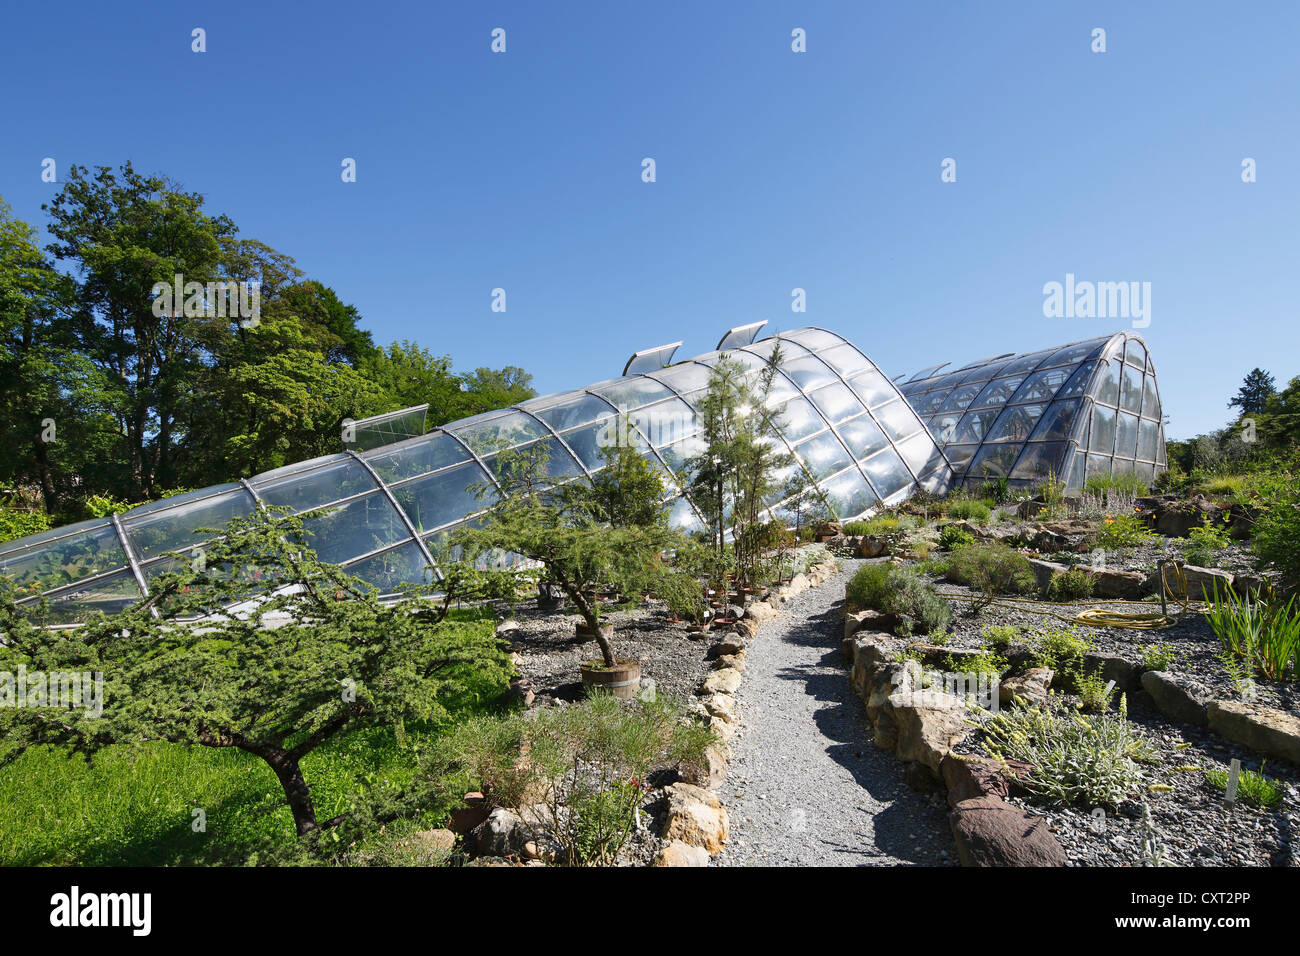 New greenhouses at the Botanical Garden of the university, Graz, Styria, Austria, Europe - Stock Image